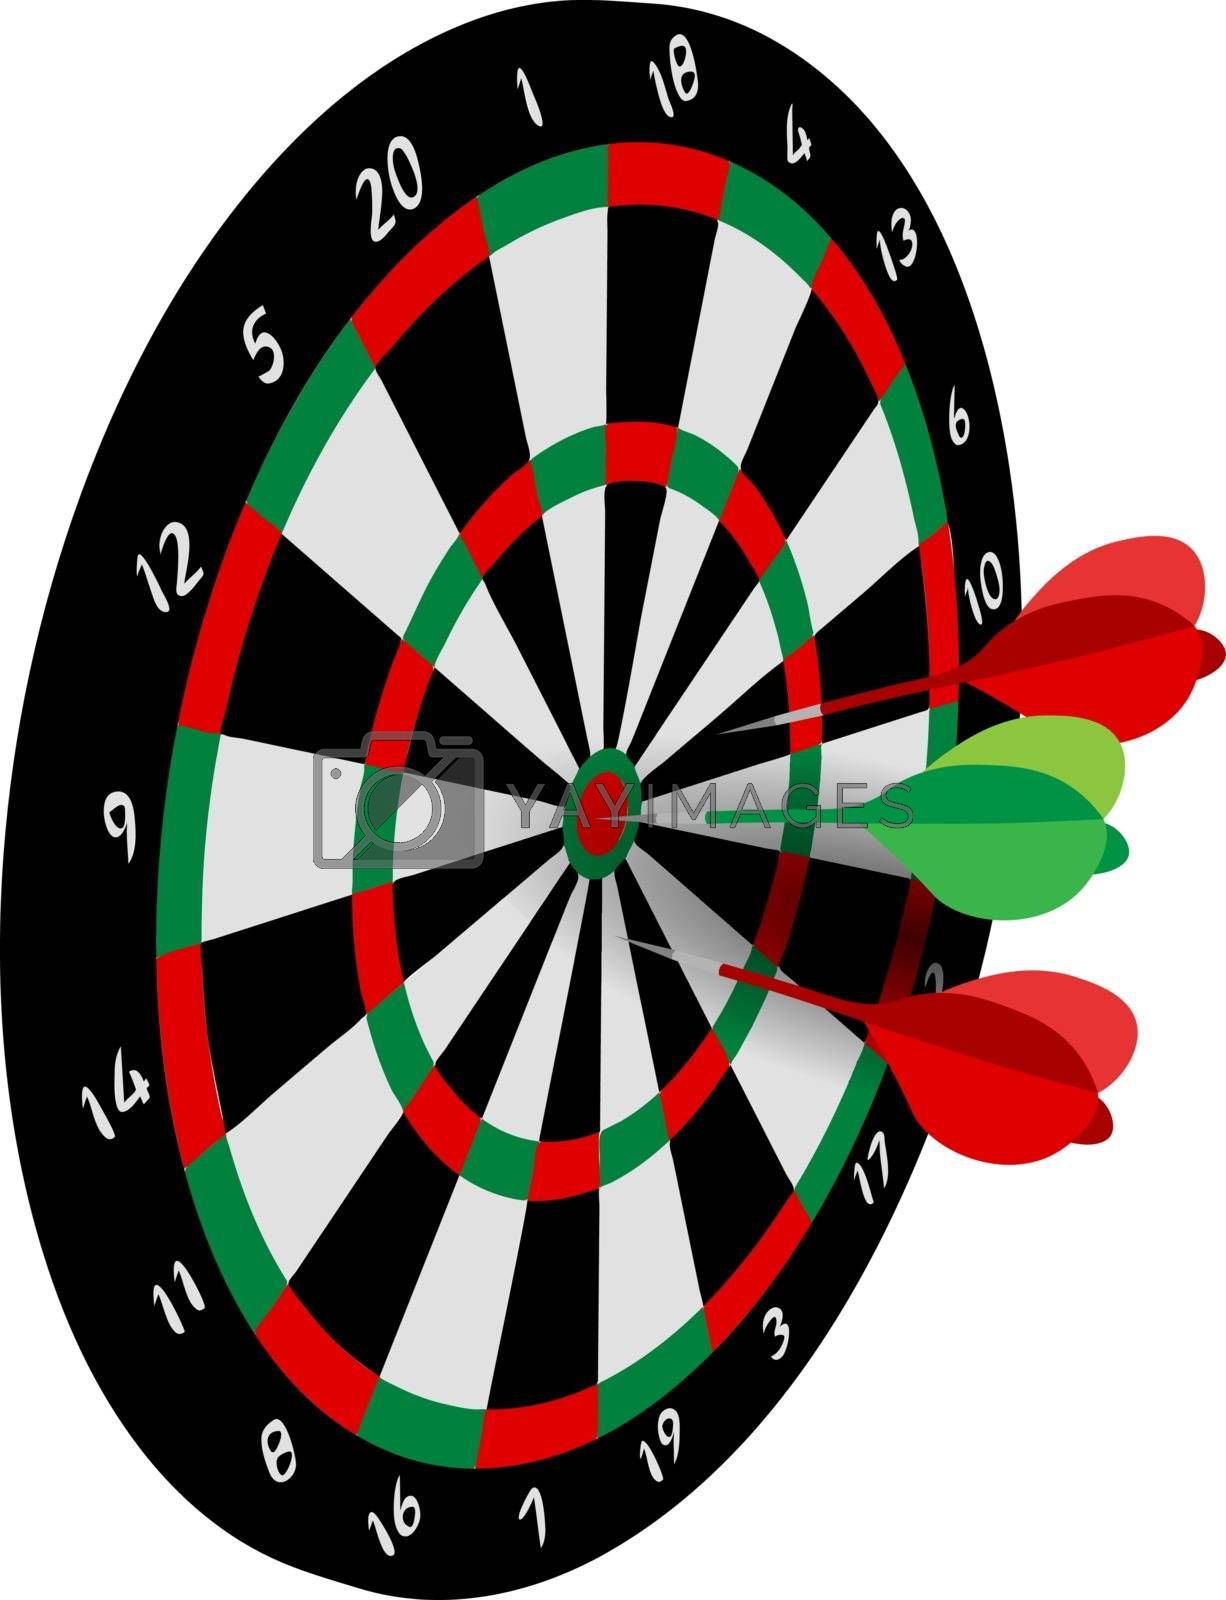 perspective vector sport illustration of three darts in realistic target or dartboard